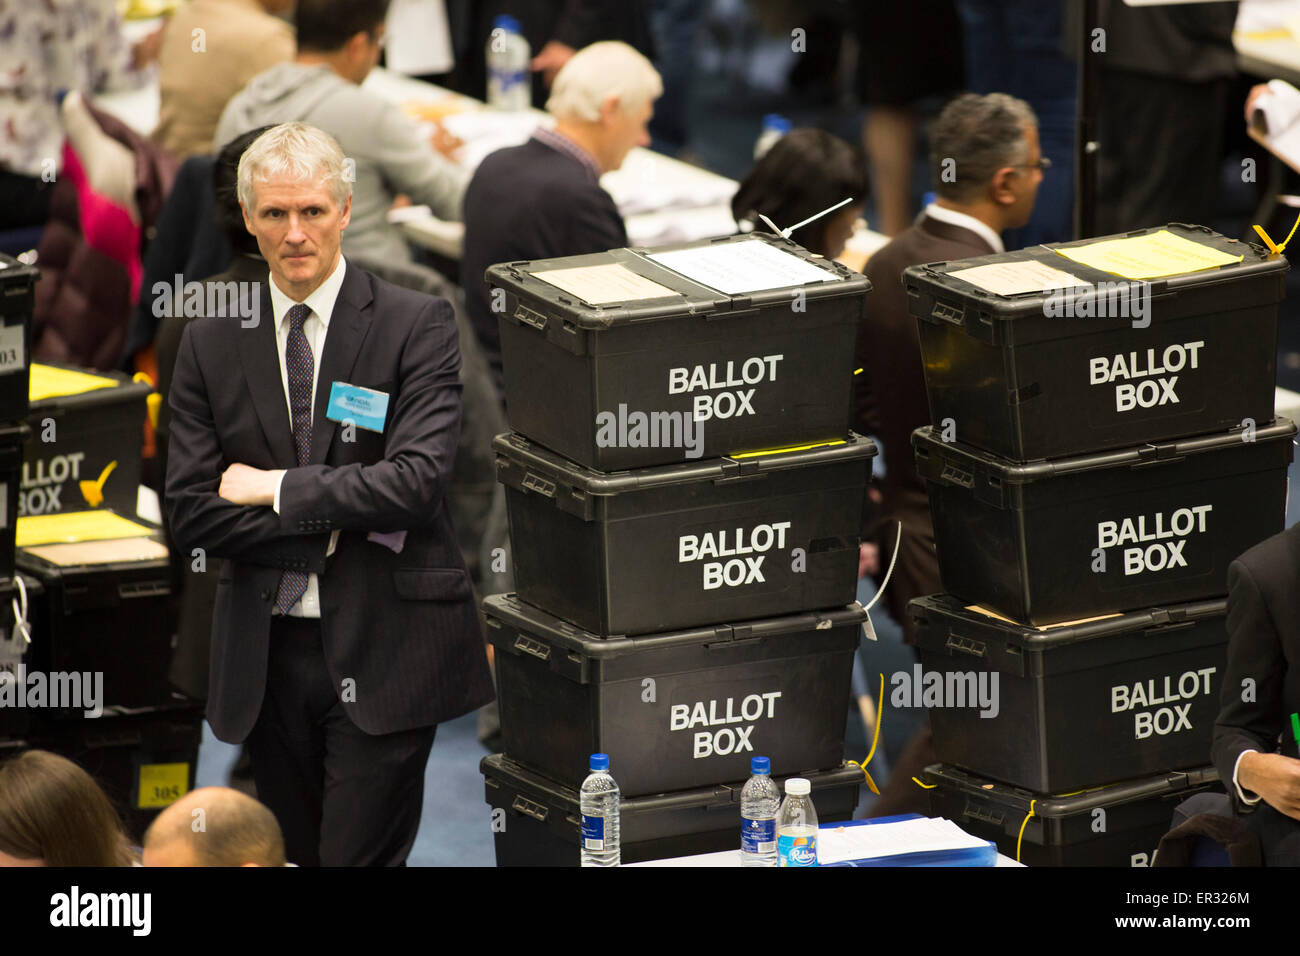 Mark Rogers, Chief Executive of Birmingham City Council leaning on ballot boxes during the General Election count - Stock Image